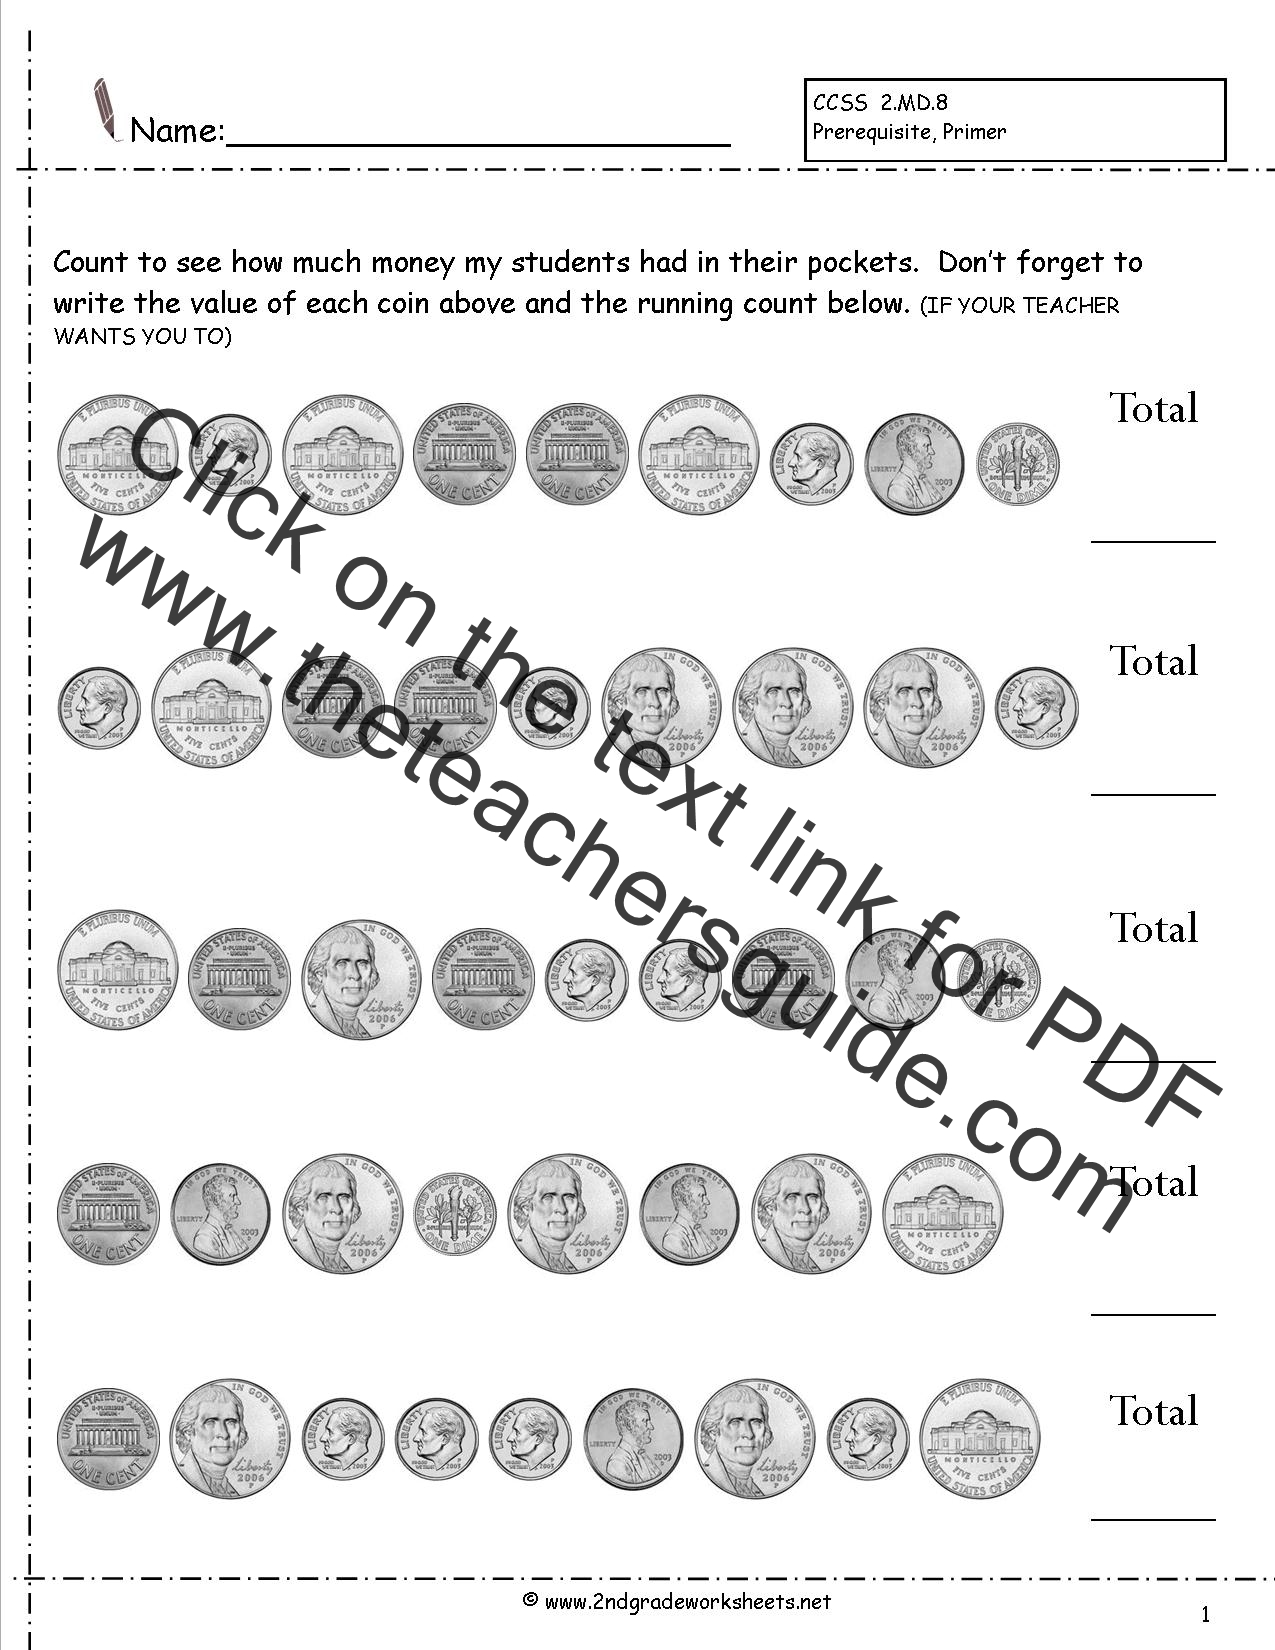 Common Core Worksheets For 2nd Grade